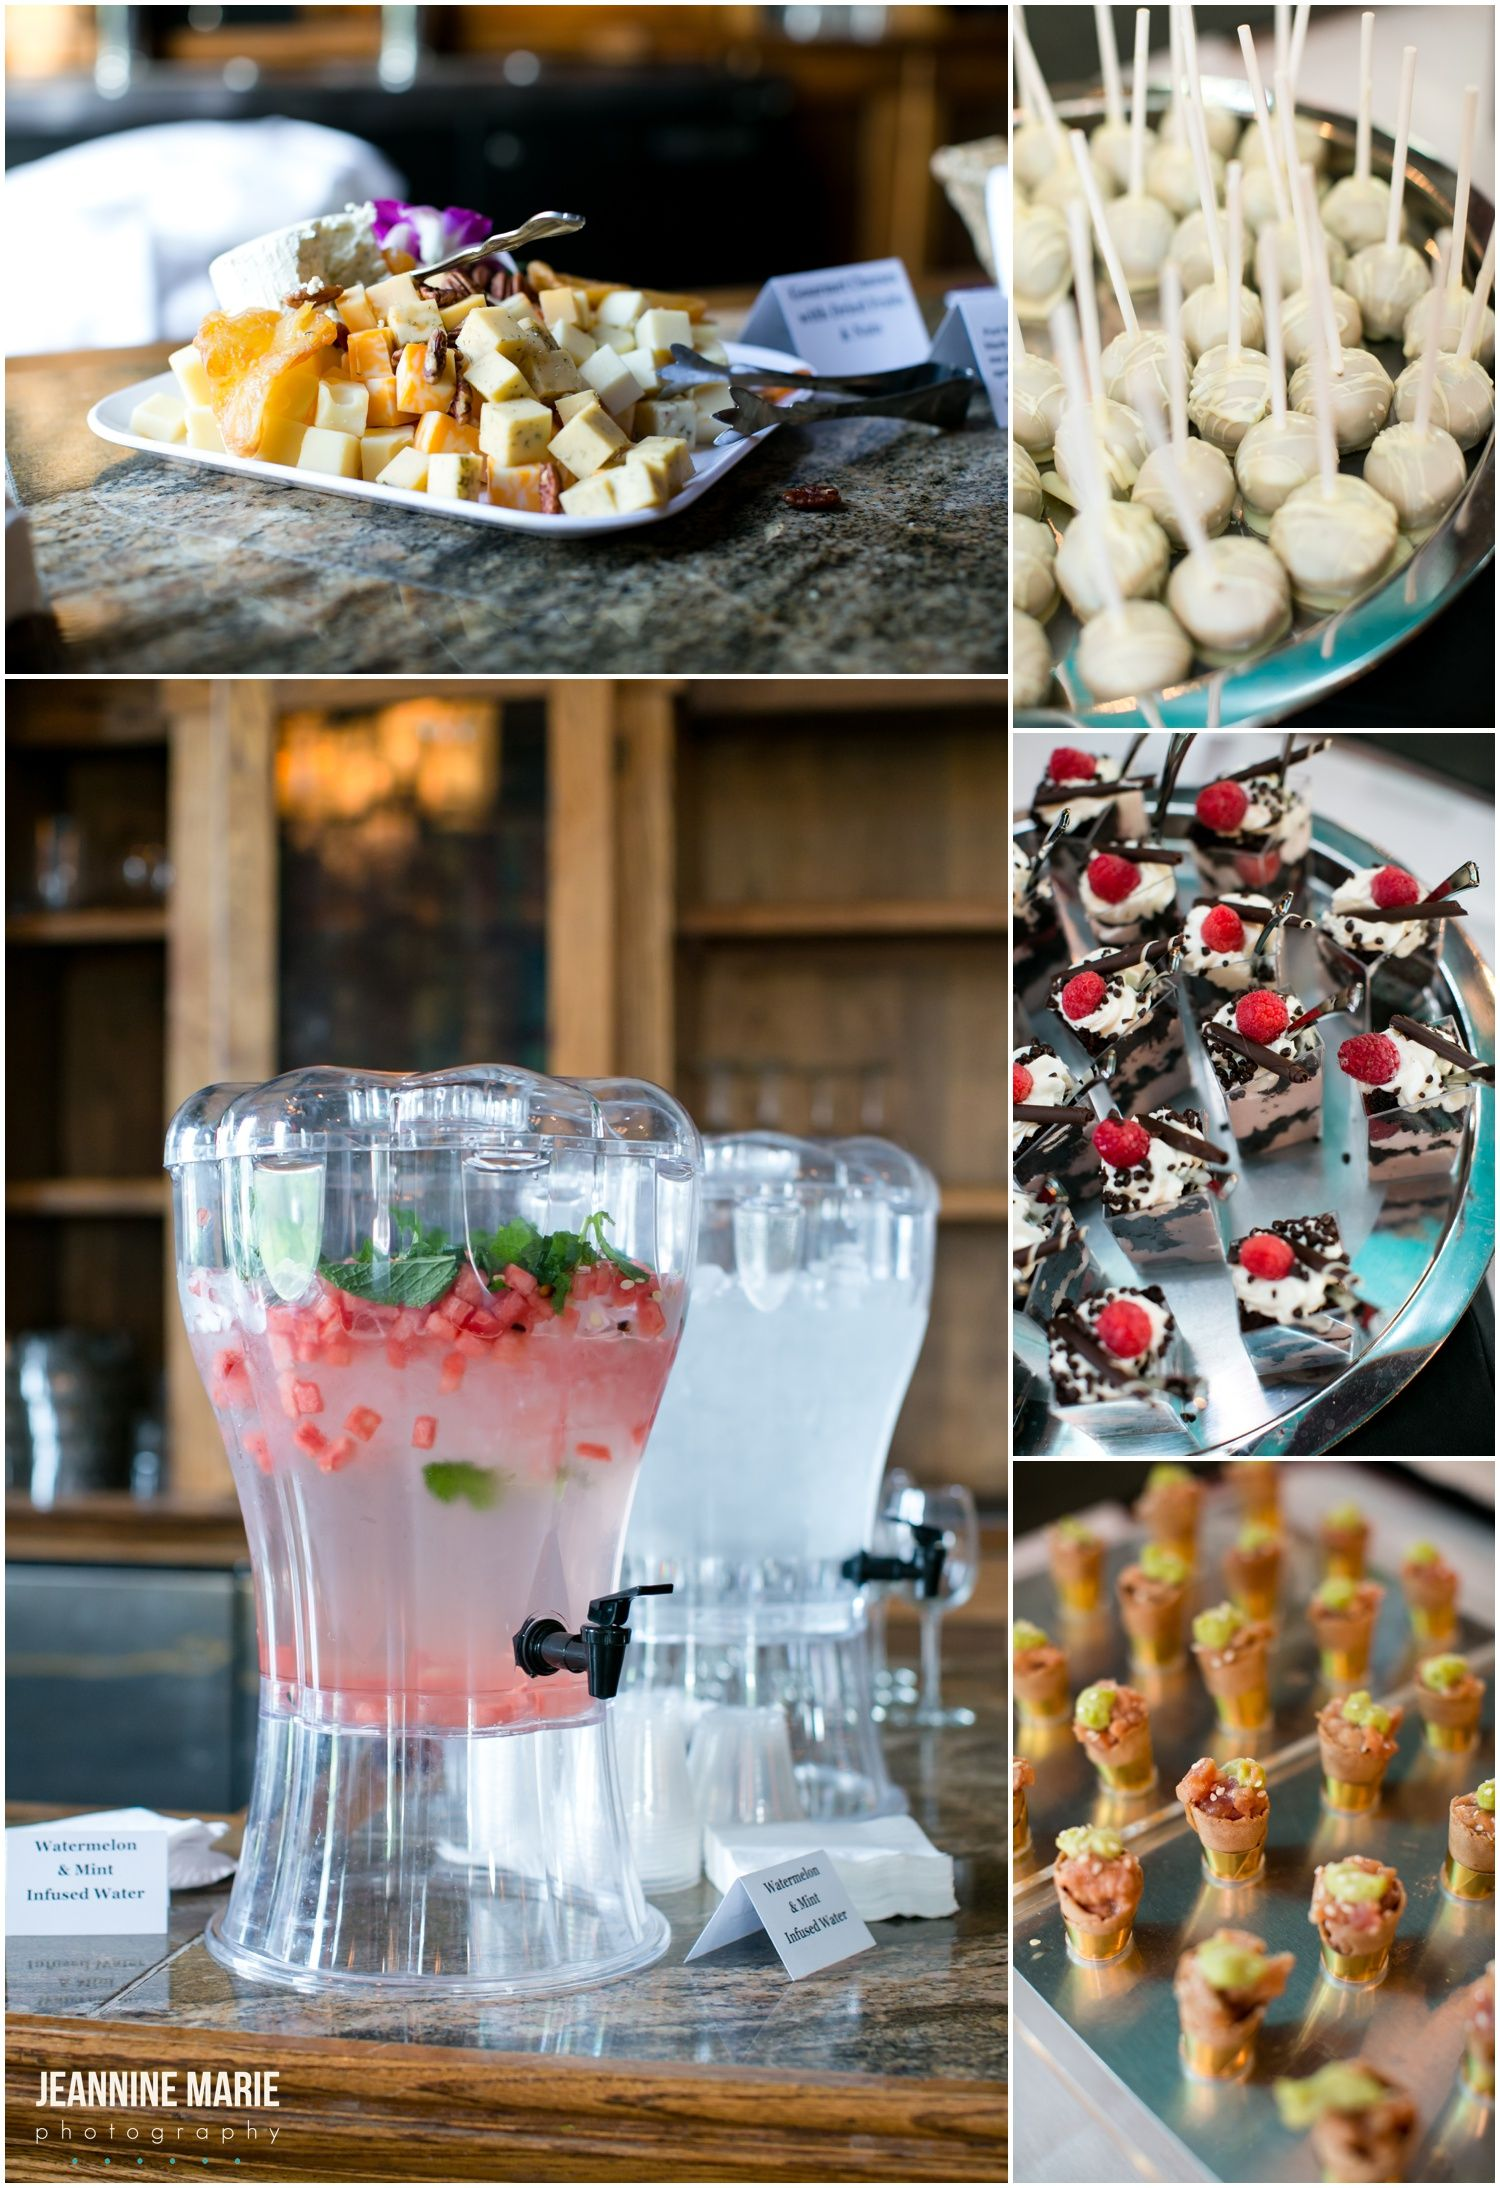 Mintahoe Catering Hosts A Tasting At Nicollet Island Pavilion In Minneapolis MN Photographed By Jeannine Marie Photography Twin Cities Wedding